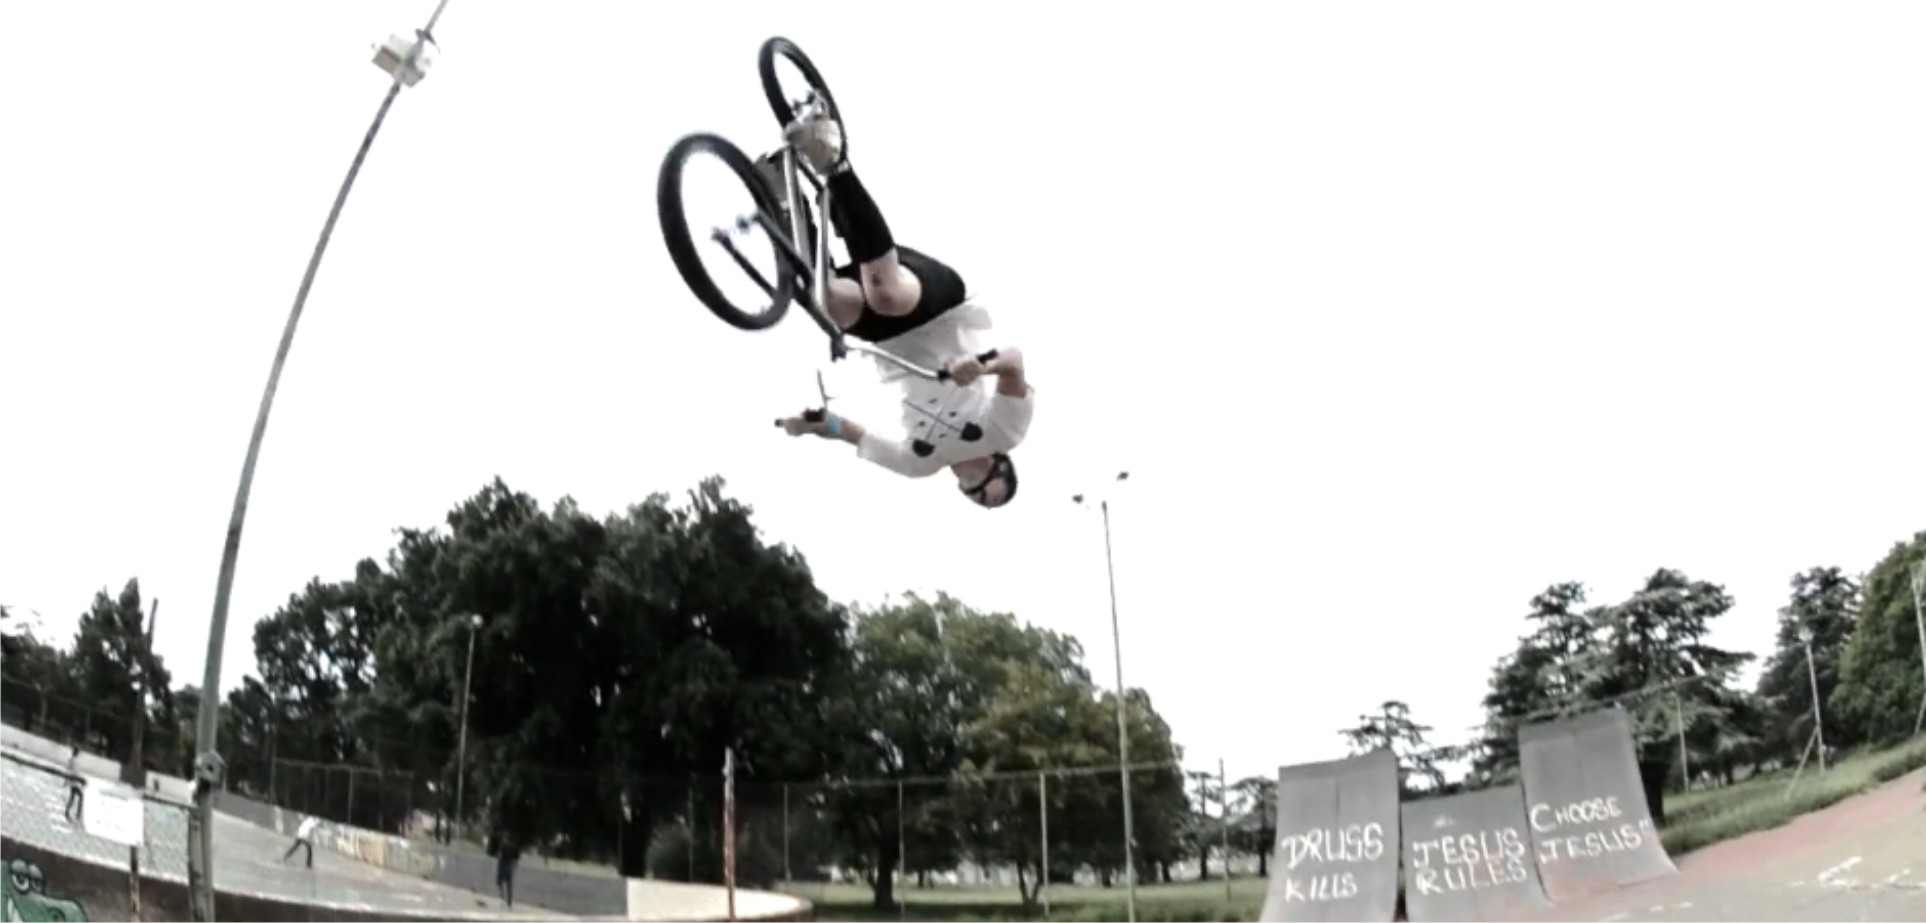 One Day Edit is a cool BMX video edit of two of SA's up and coming riders